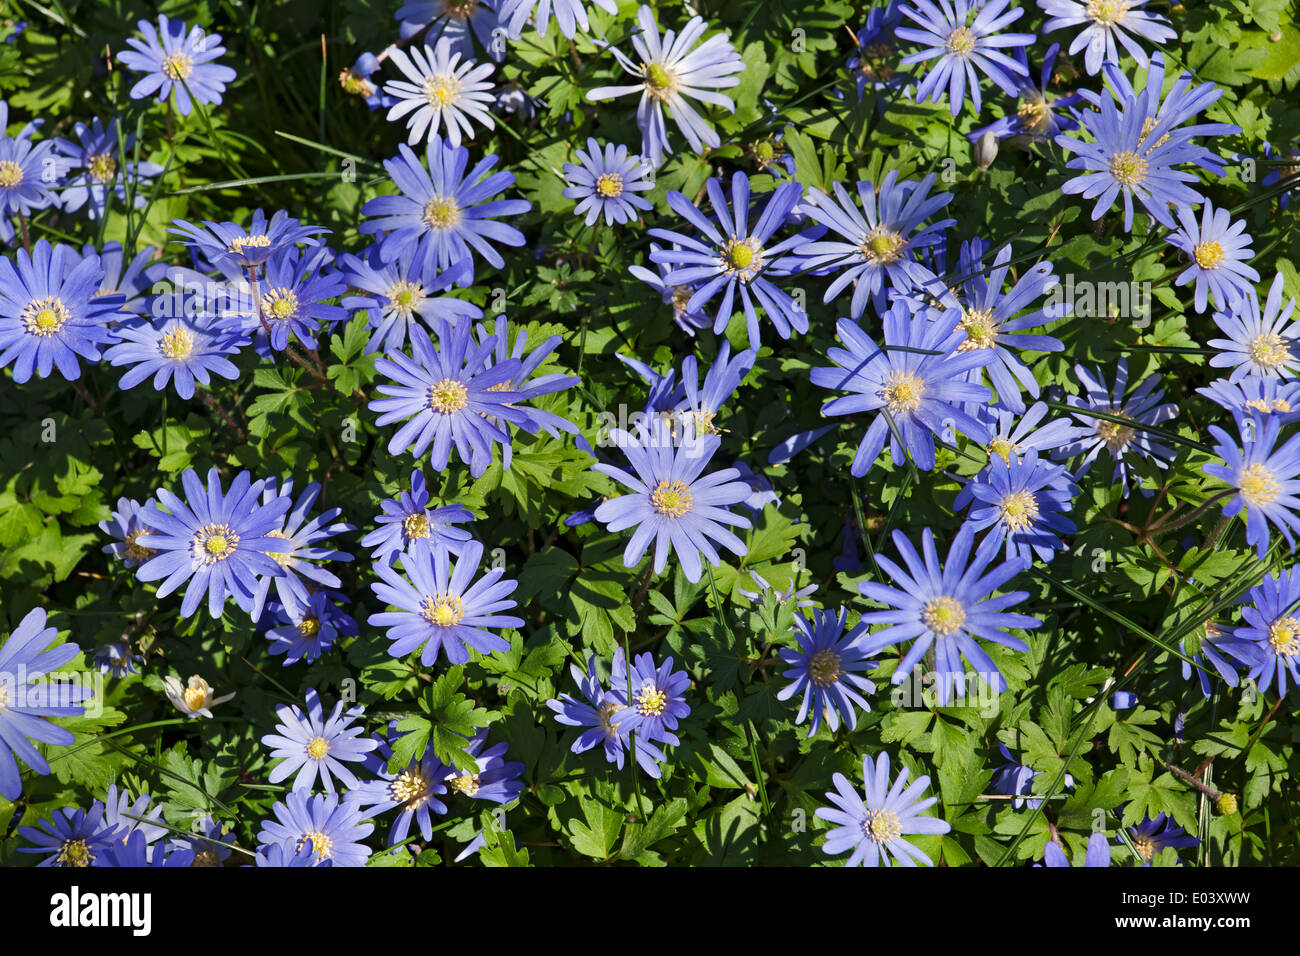 Blue anemone flowers in spring england uk united kingdom gb great blue anemone flowers in spring england uk united kingdom gb great britain mightylinksfo